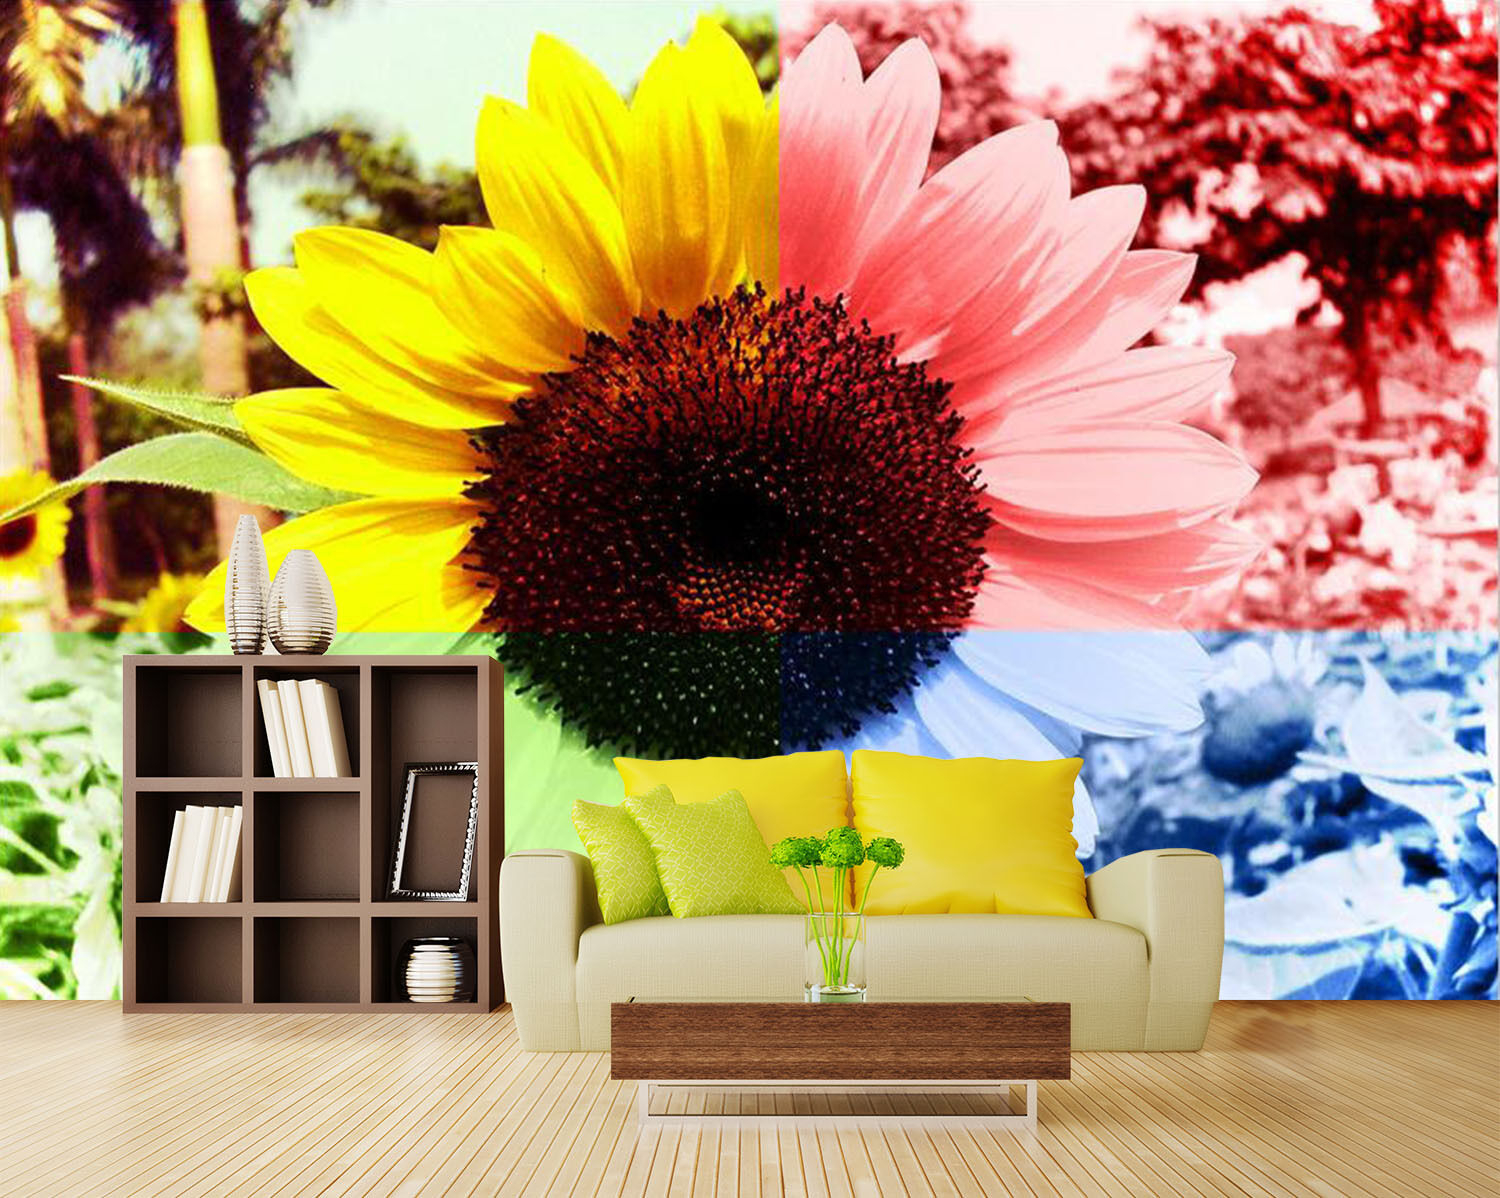 3D Farbeful sunflowers 236 Wall Paper Print Wall Decal Deco Indoor Wall Murals